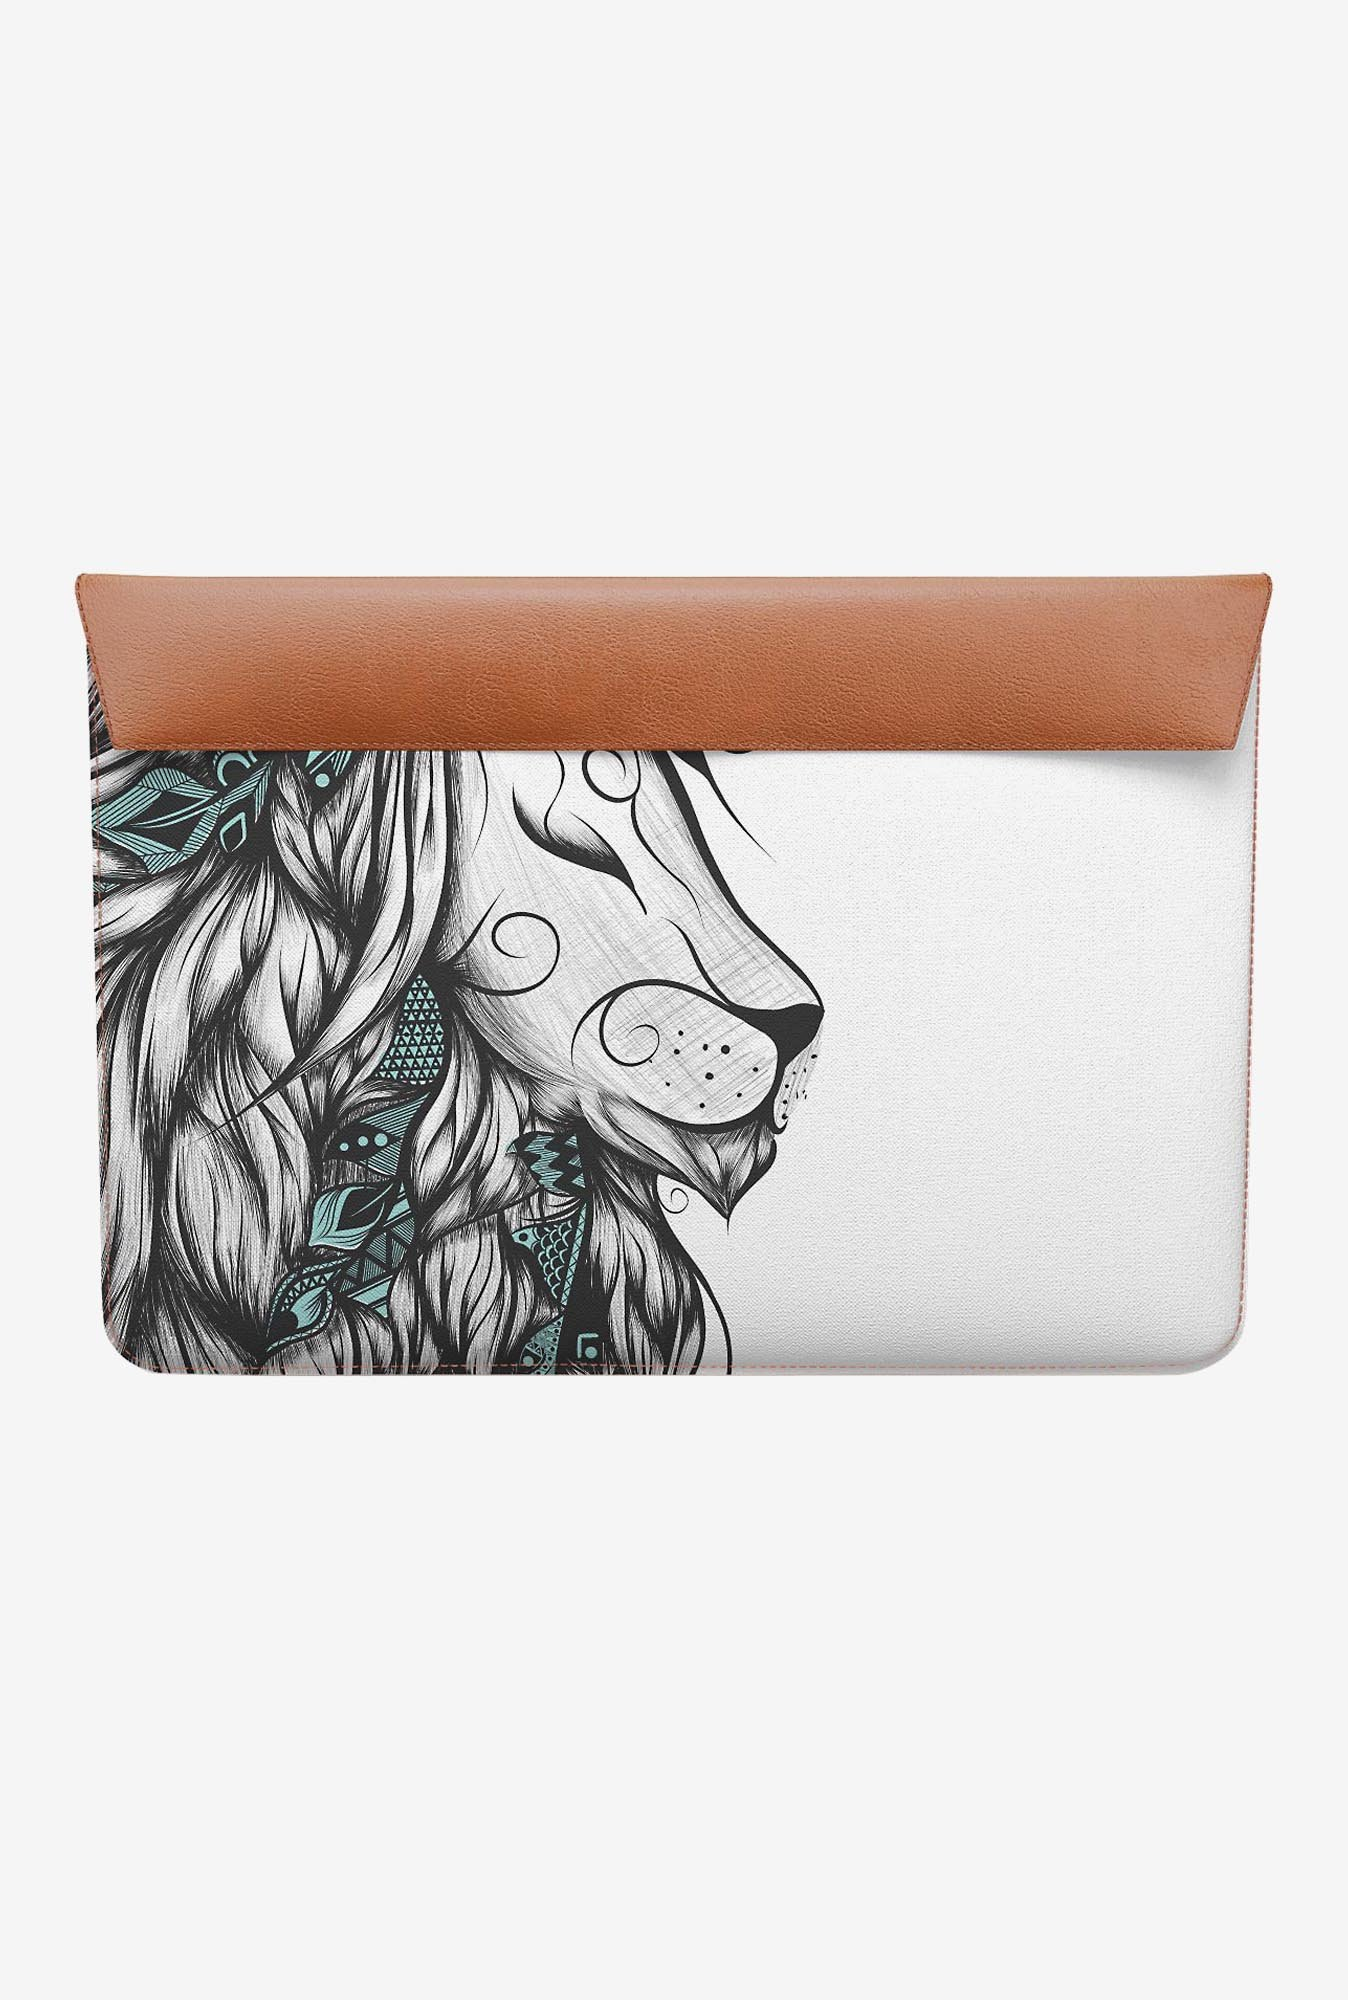 DailyObjects Poetic Lion MacBook Pro 15 Envelope Sleeve